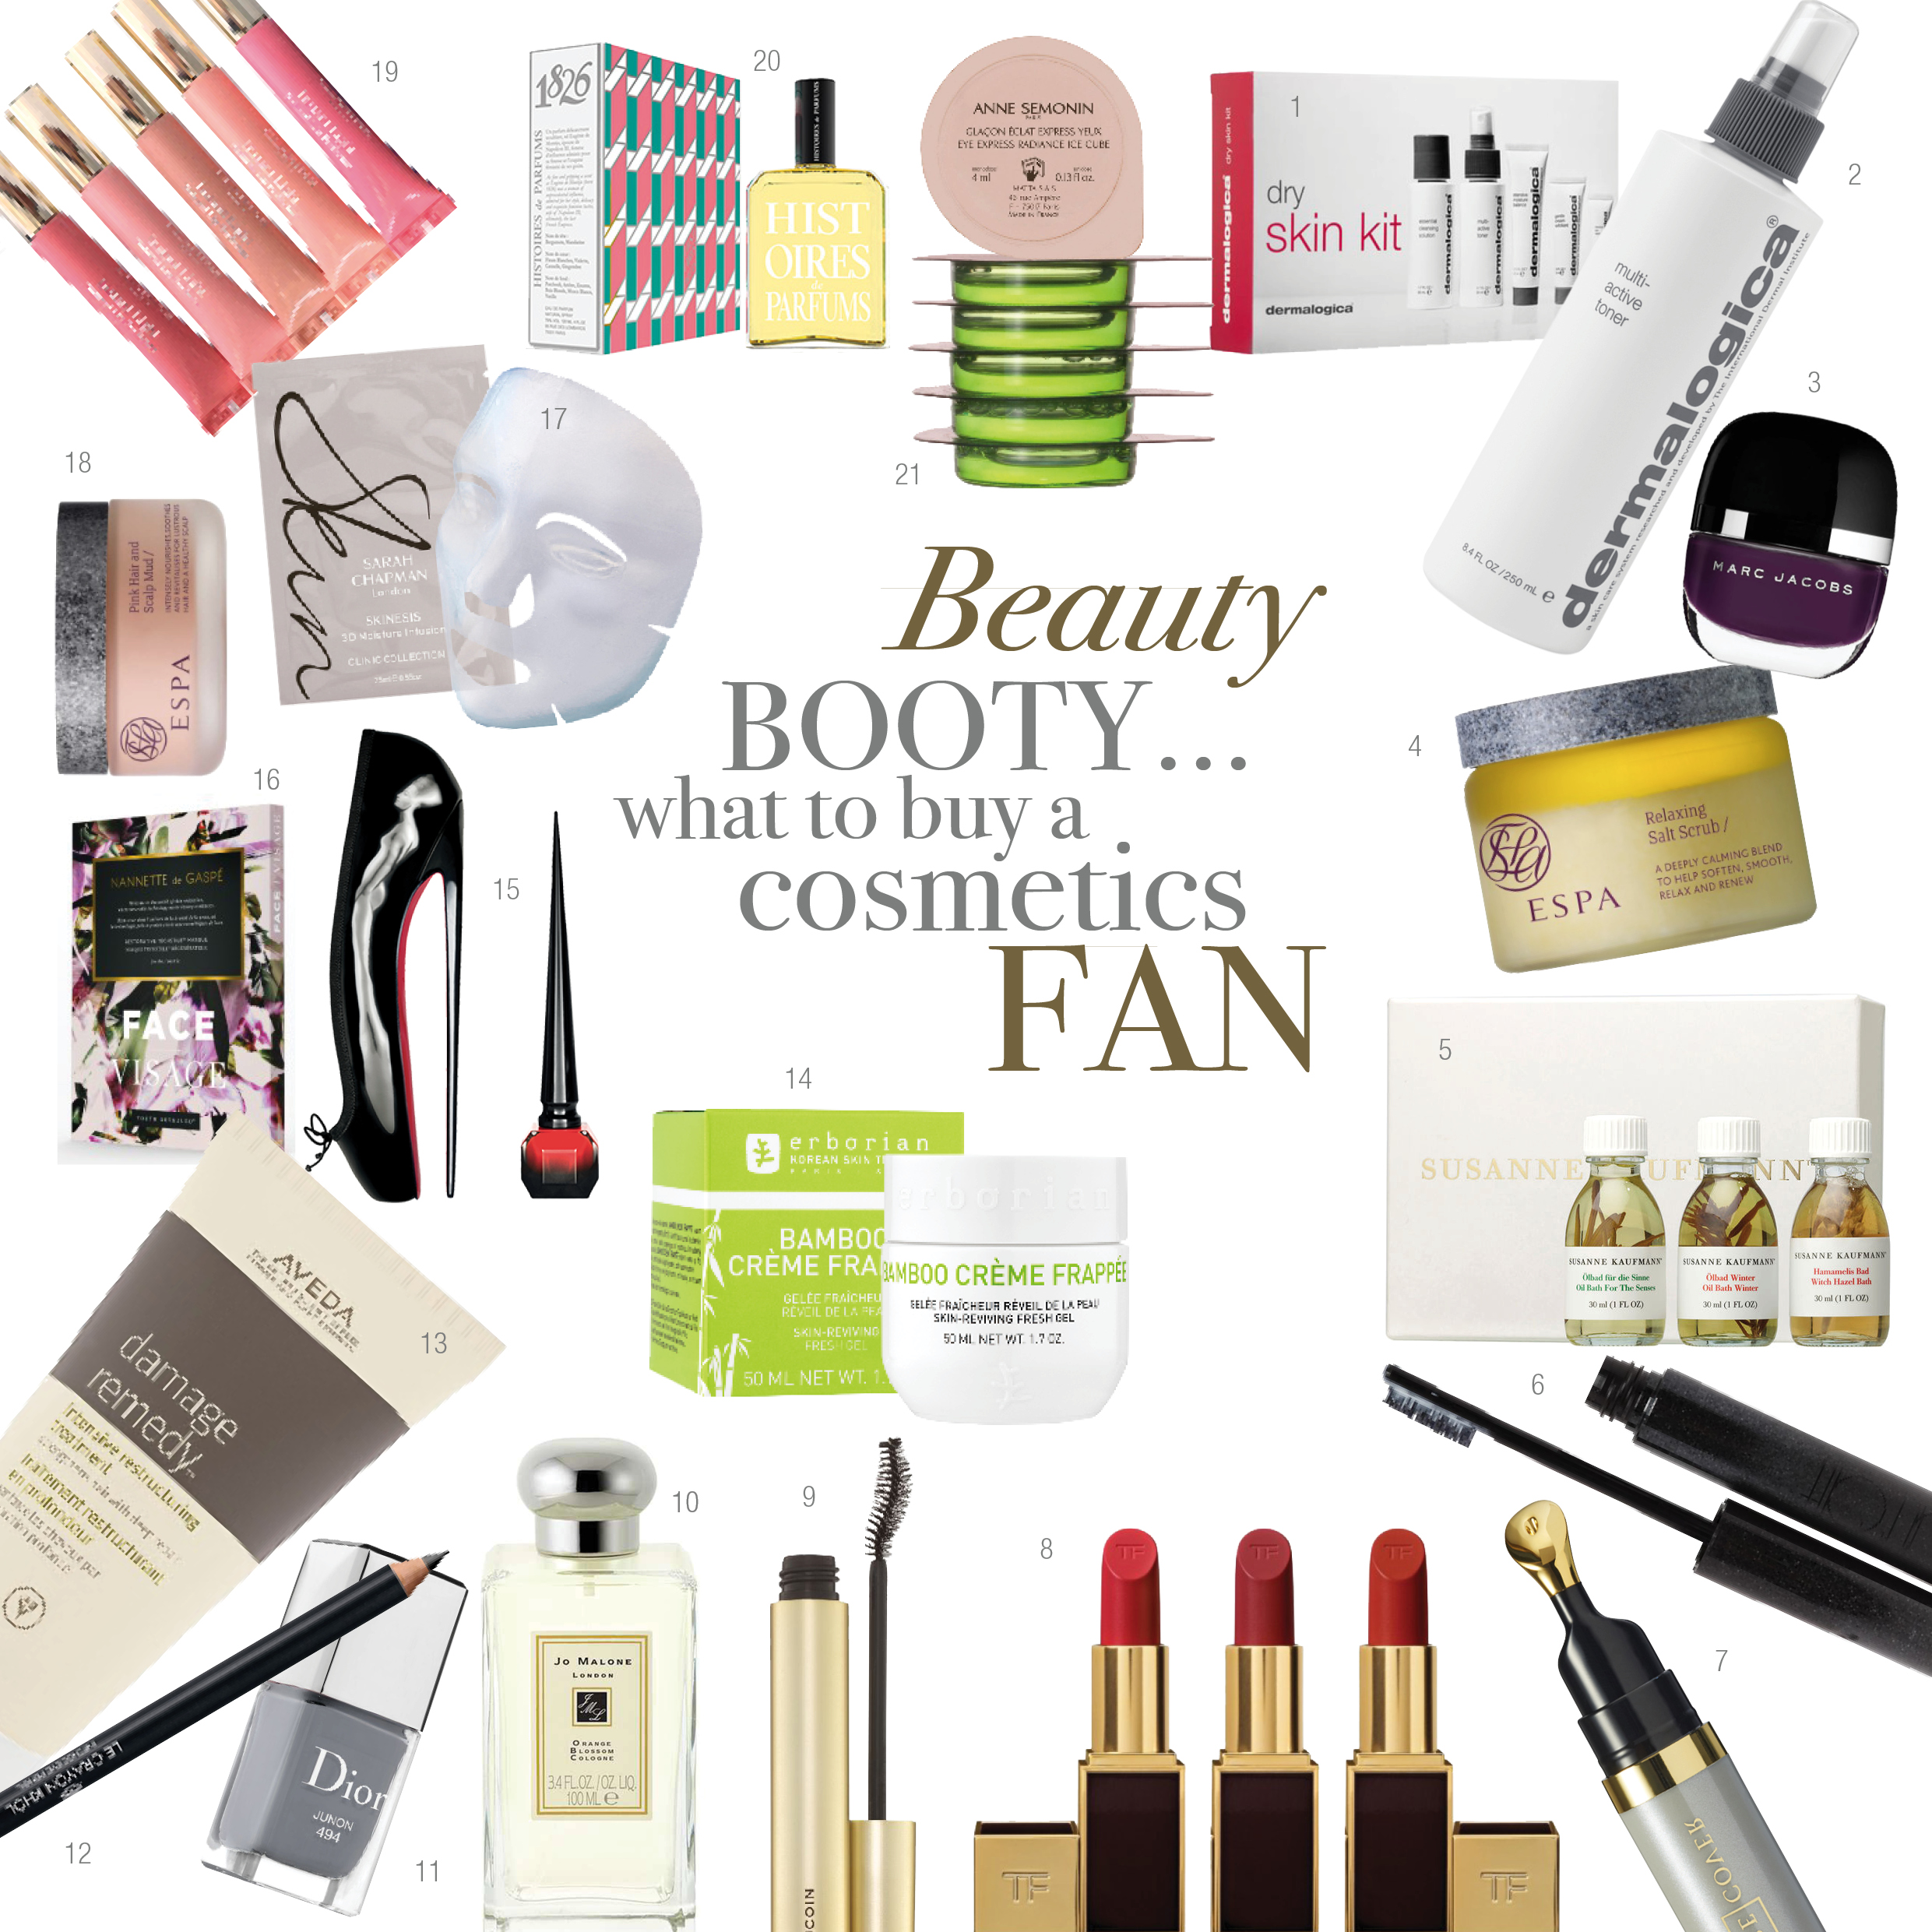 Beauty booty - What to buy a cosmetics fan